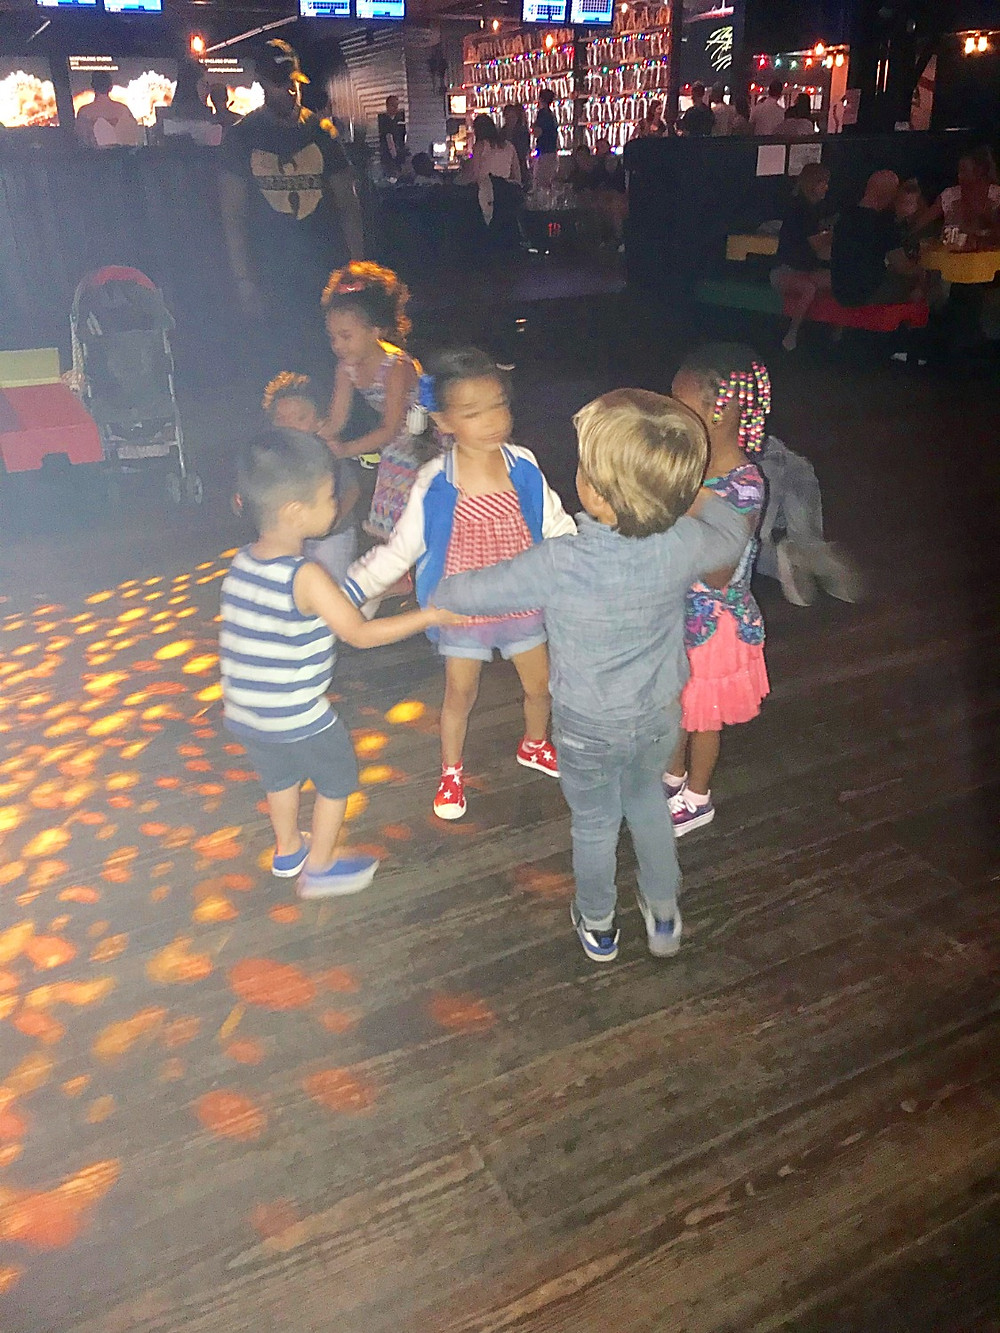 Brooklyn Bowl, Family Bowl, best family bowling alleys in NYC, kids bowling, Curious G and Me, Brooklyn kids, NYC indoor activity guide for kids